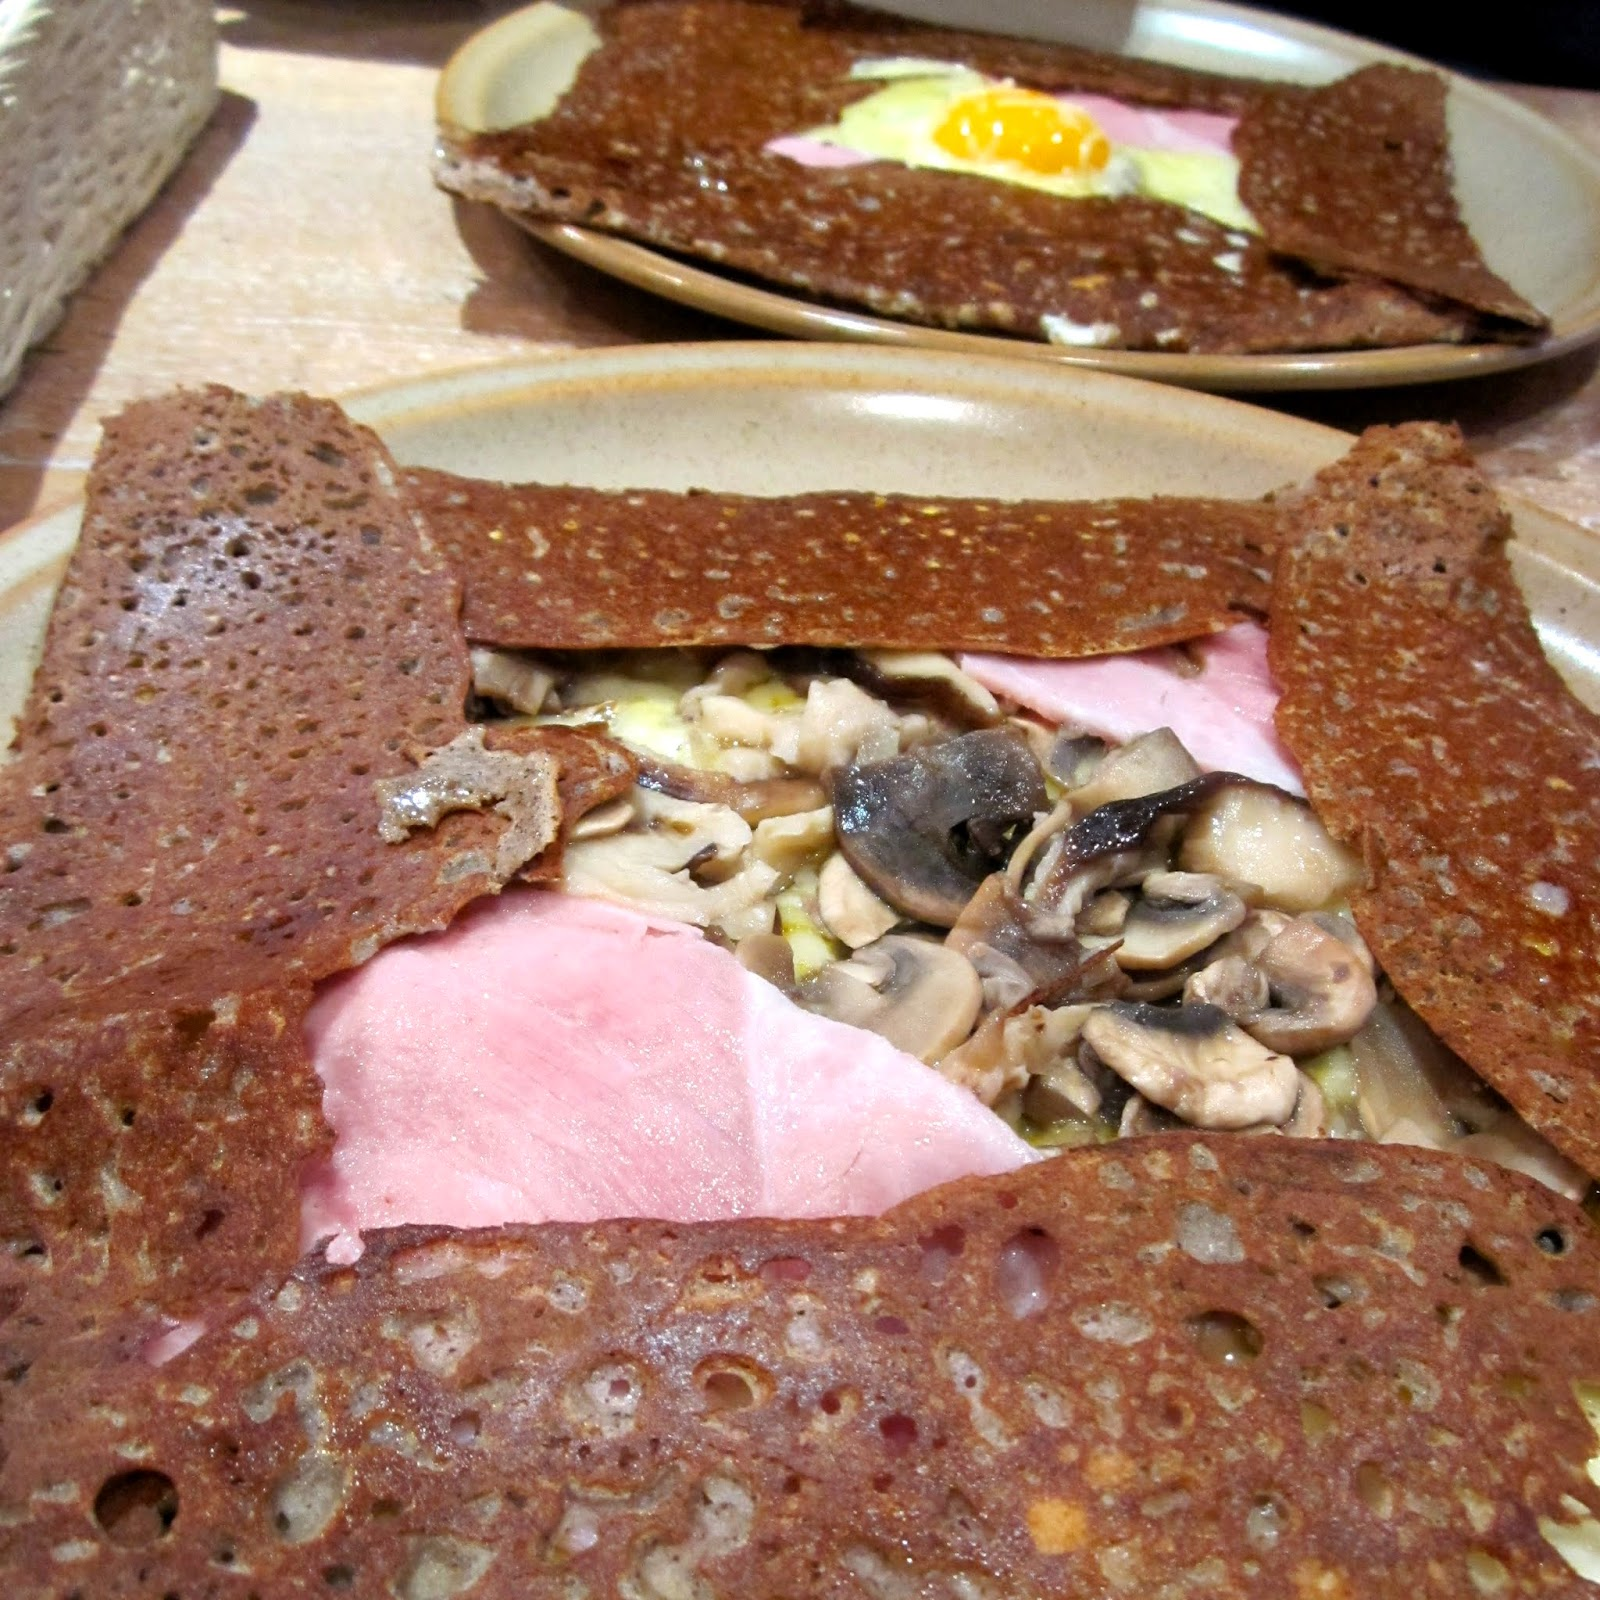 Buckwheat galettes crepes Breizh Cafe Paris France